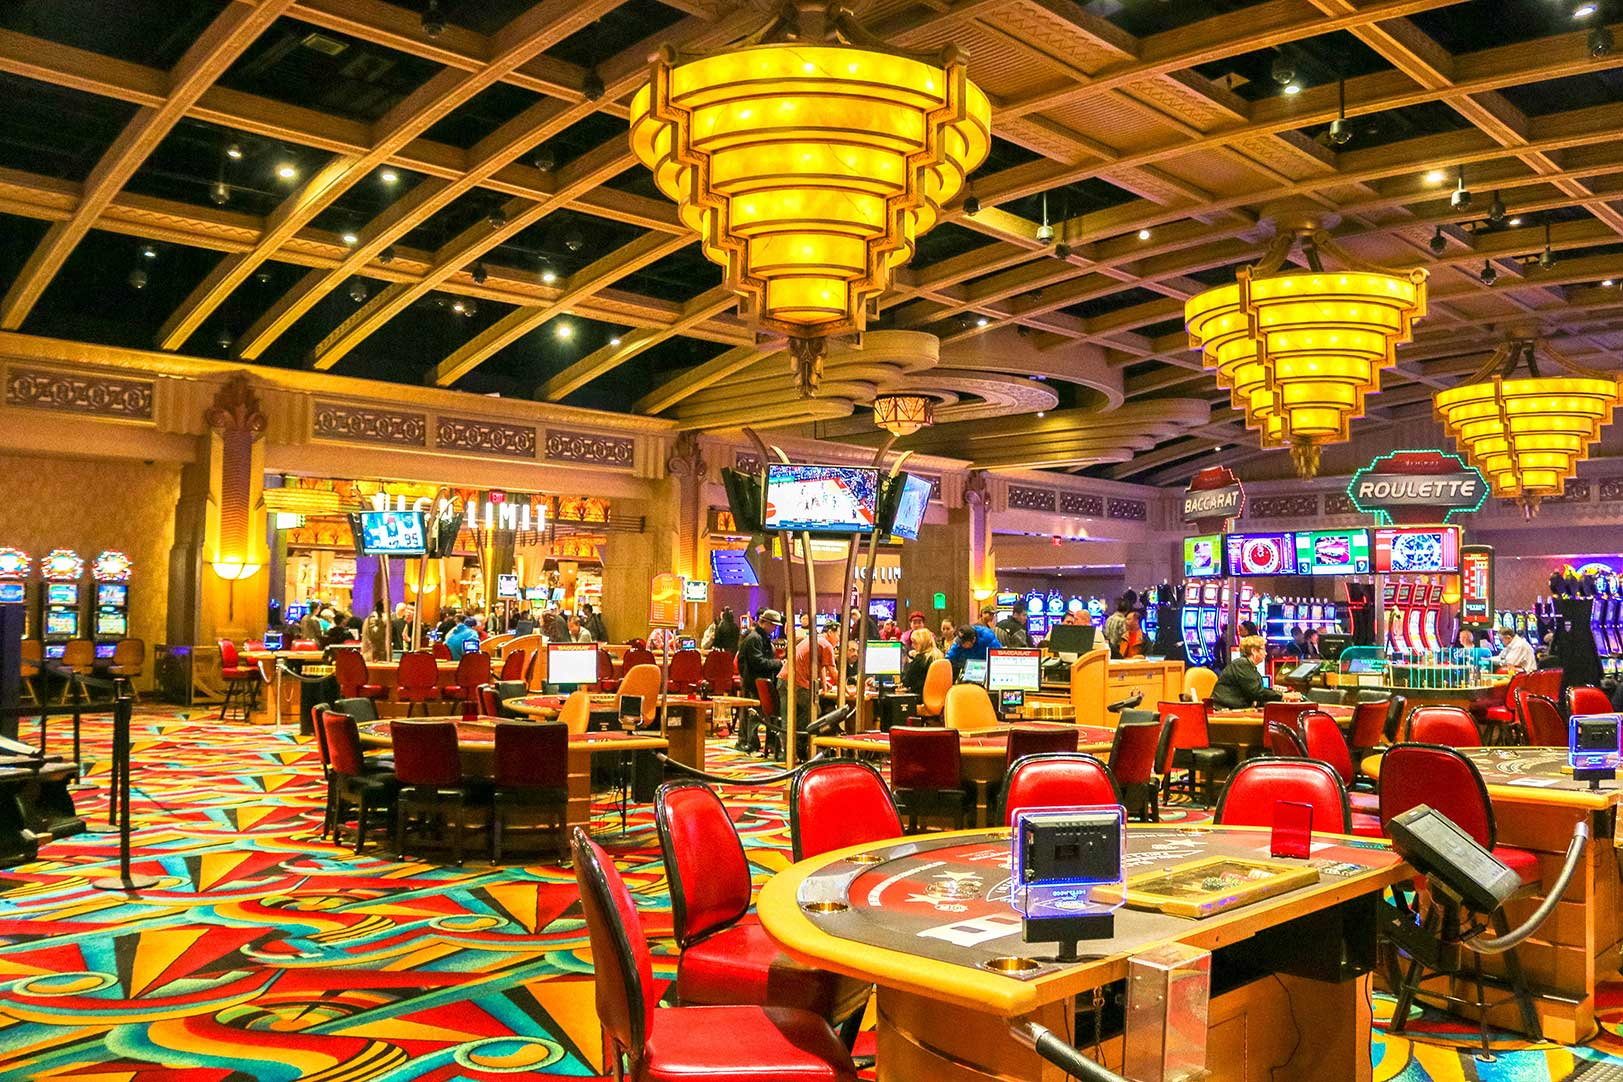 Hollywood Casino tables in Charles Town, WV